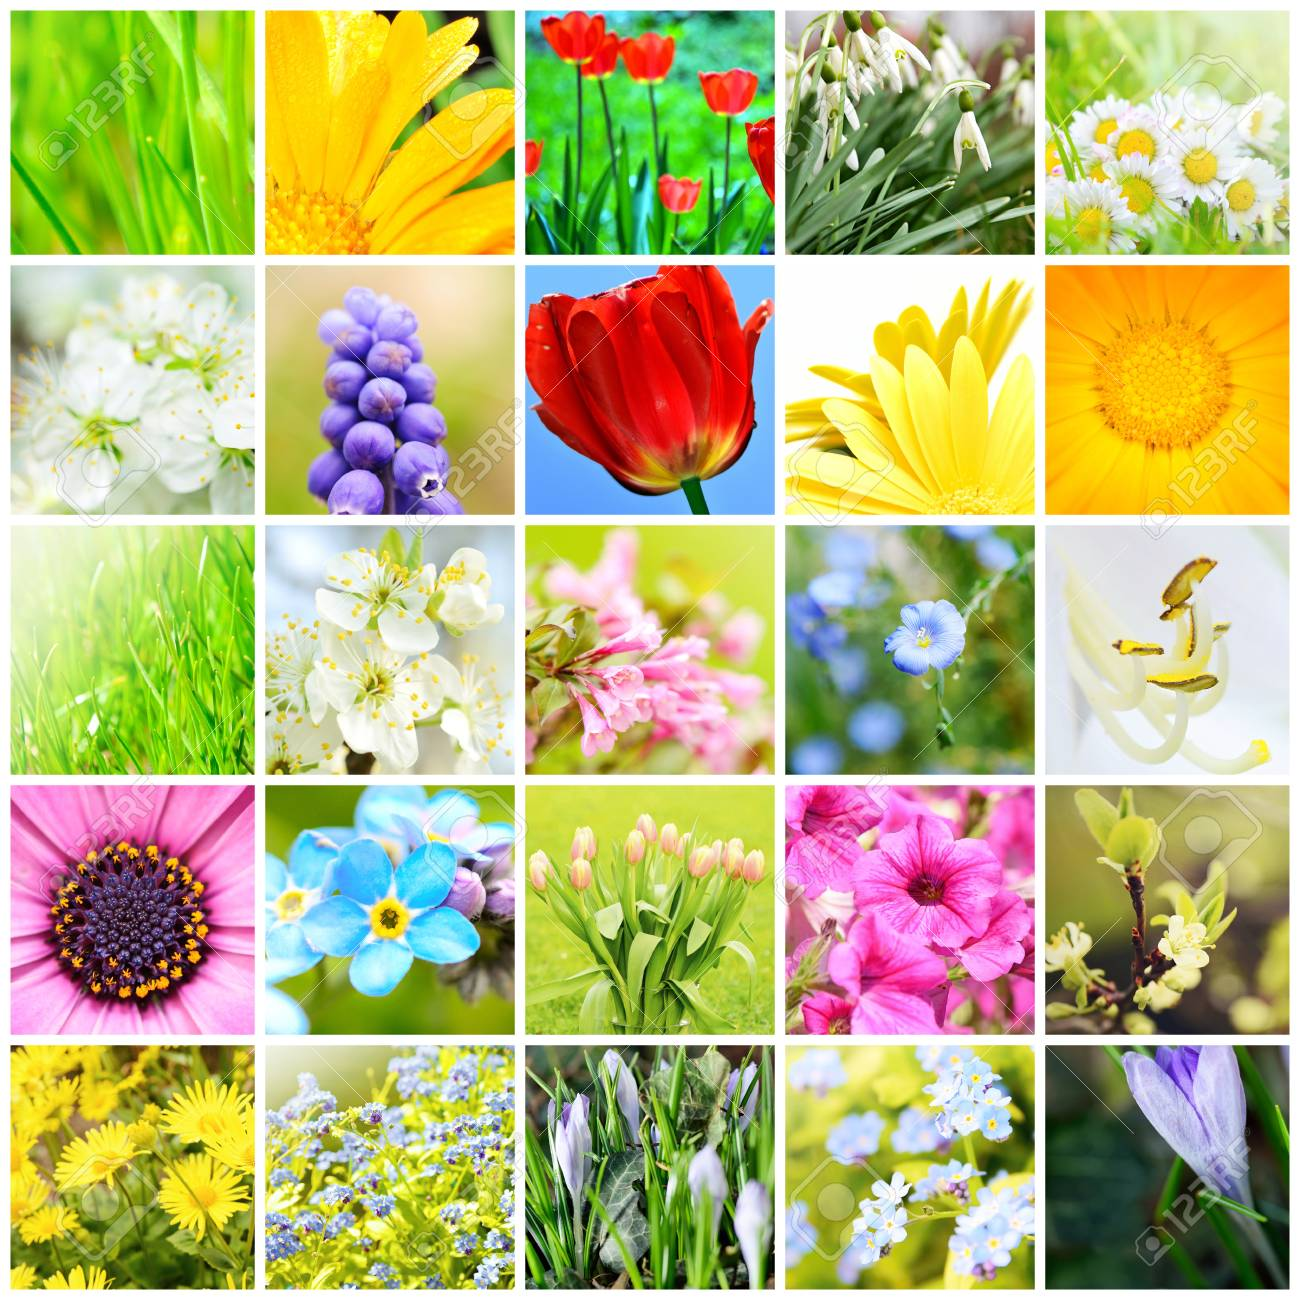 Spring Natural Abstract Collage With Plants And Flowers In Garden